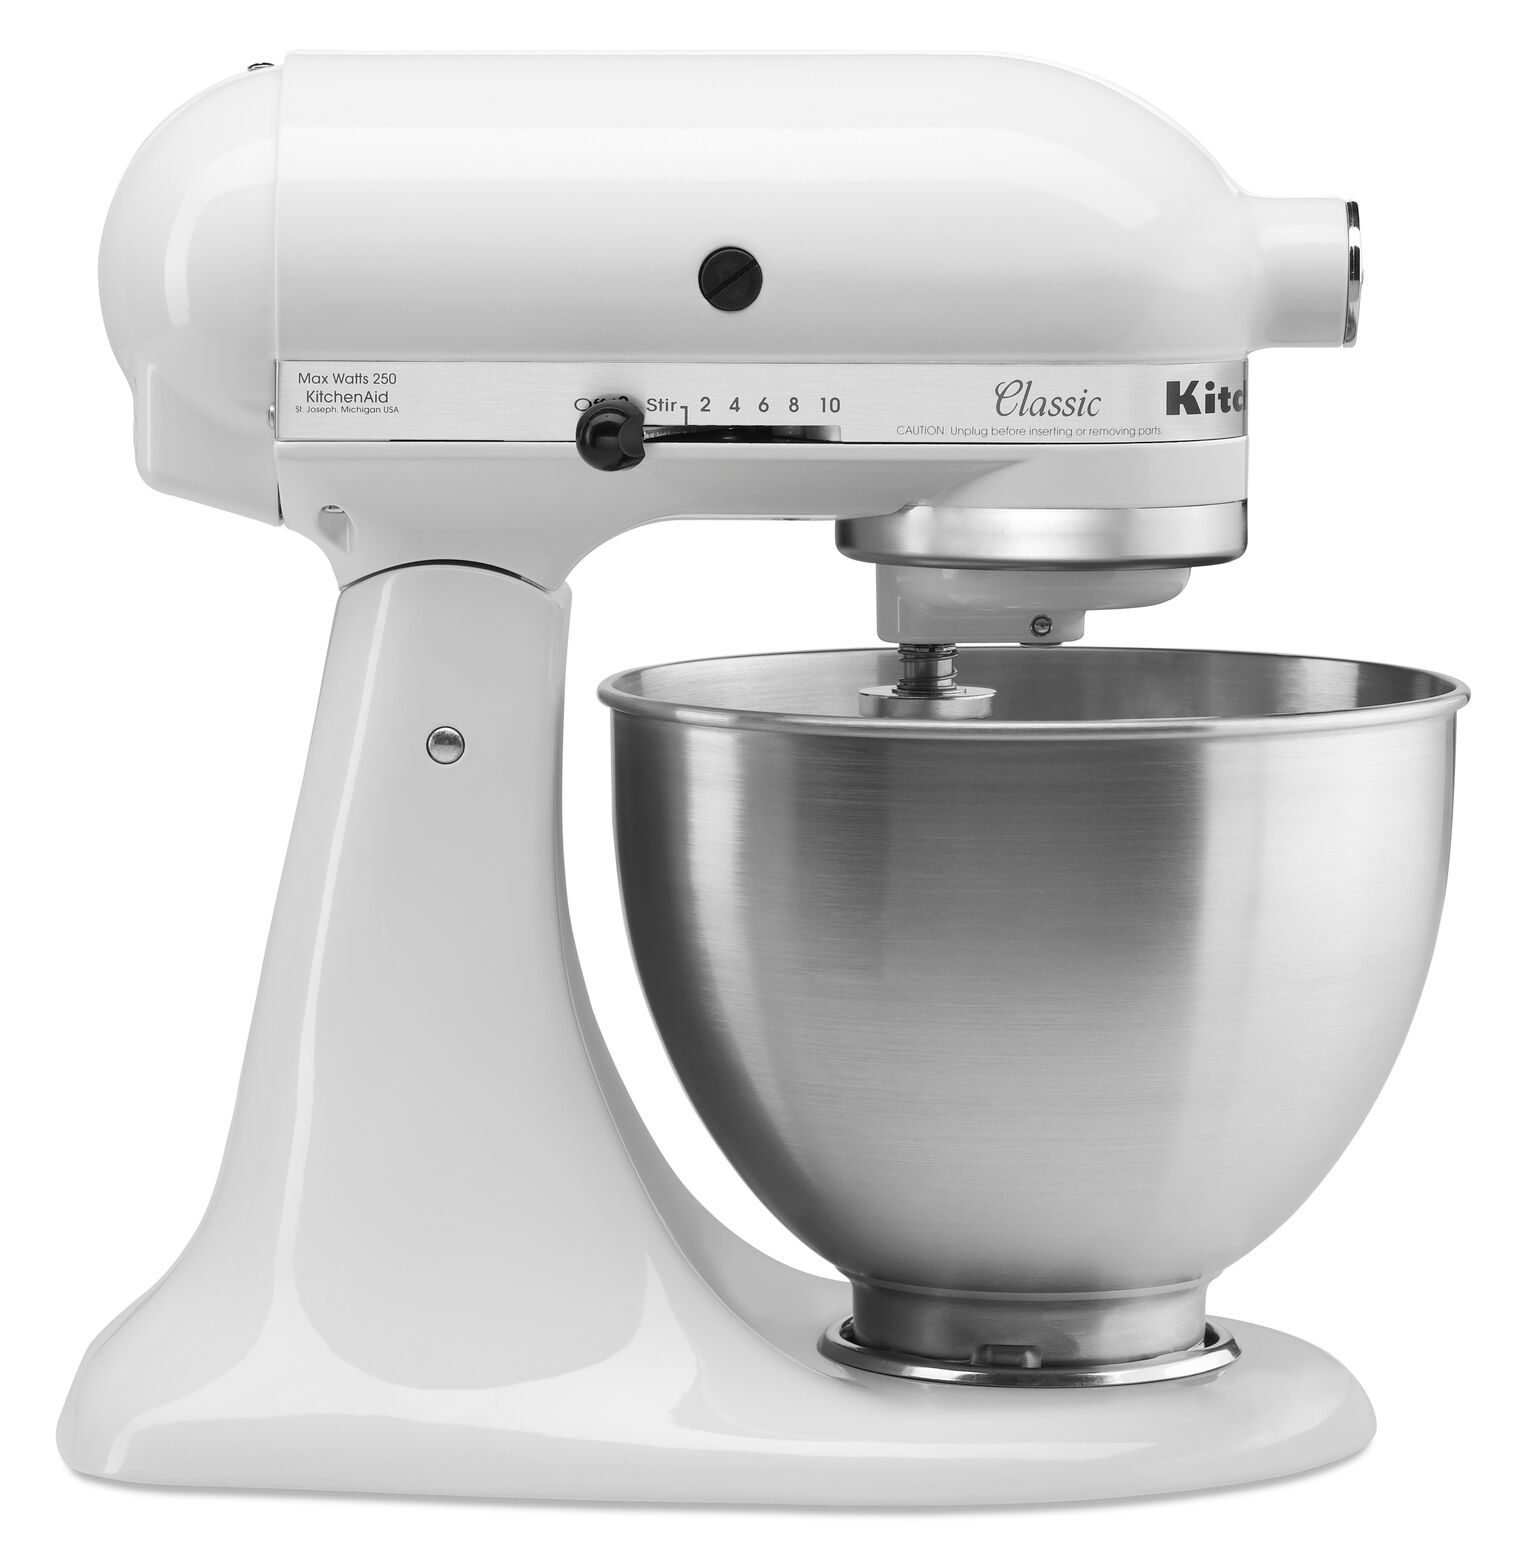 KitchenAid Classic Series 45 Quart TiltHead Stand Mixer White